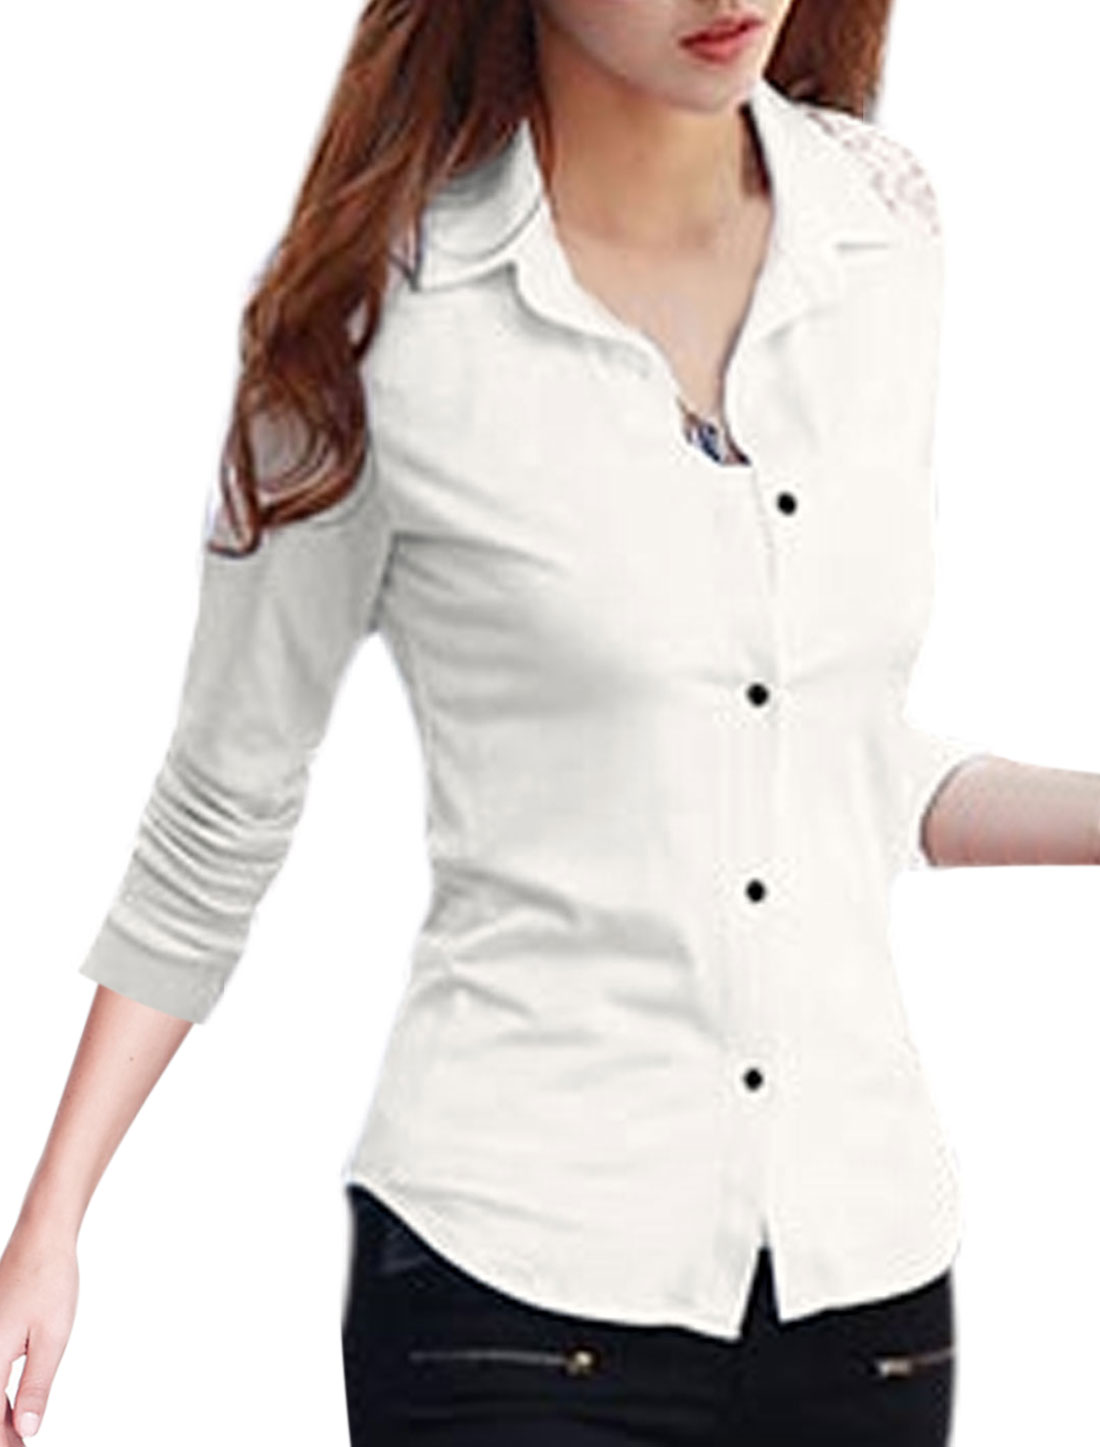 Ladies White Long Sleeves Point Collar Button Closure Lace Splice Shirt S